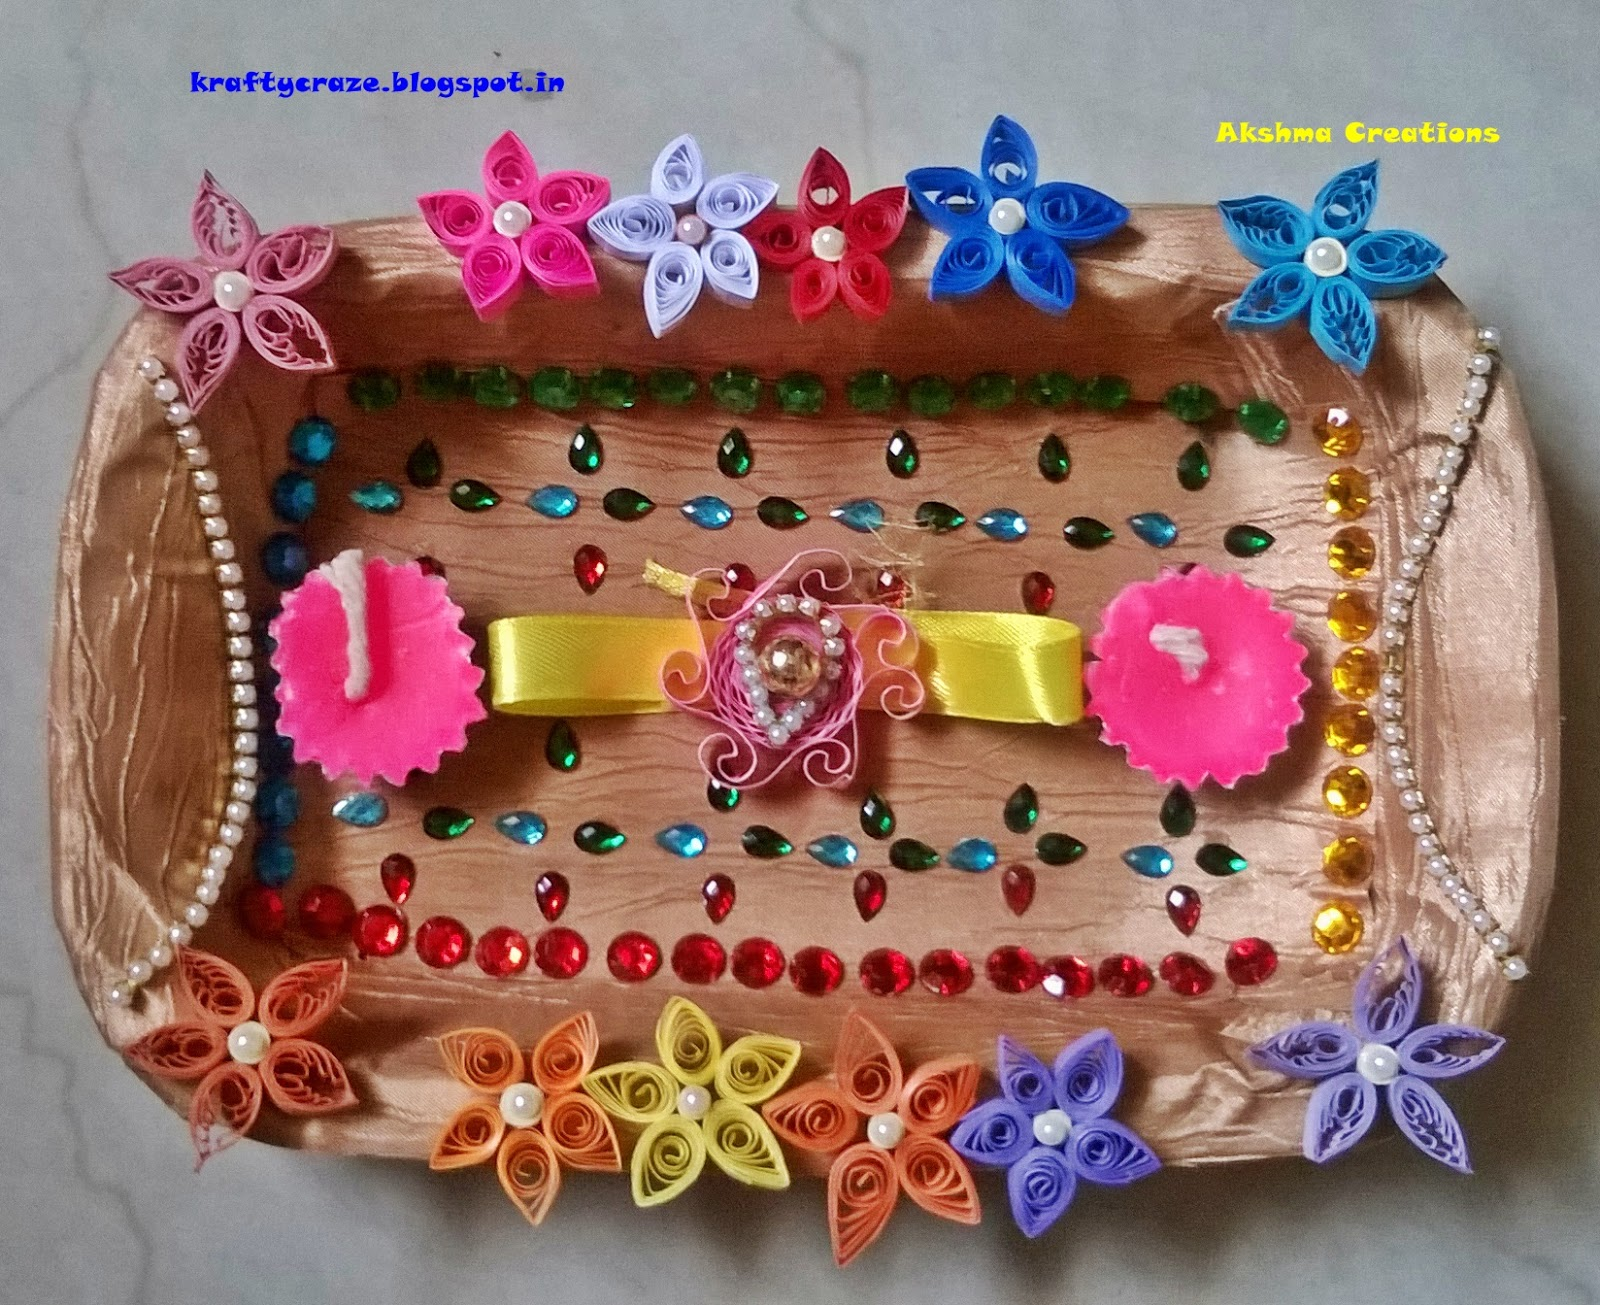 Handmade Thali/Aarti Plate & Creative Crafts and Quilling: Handmade Thali/Aarti Plate